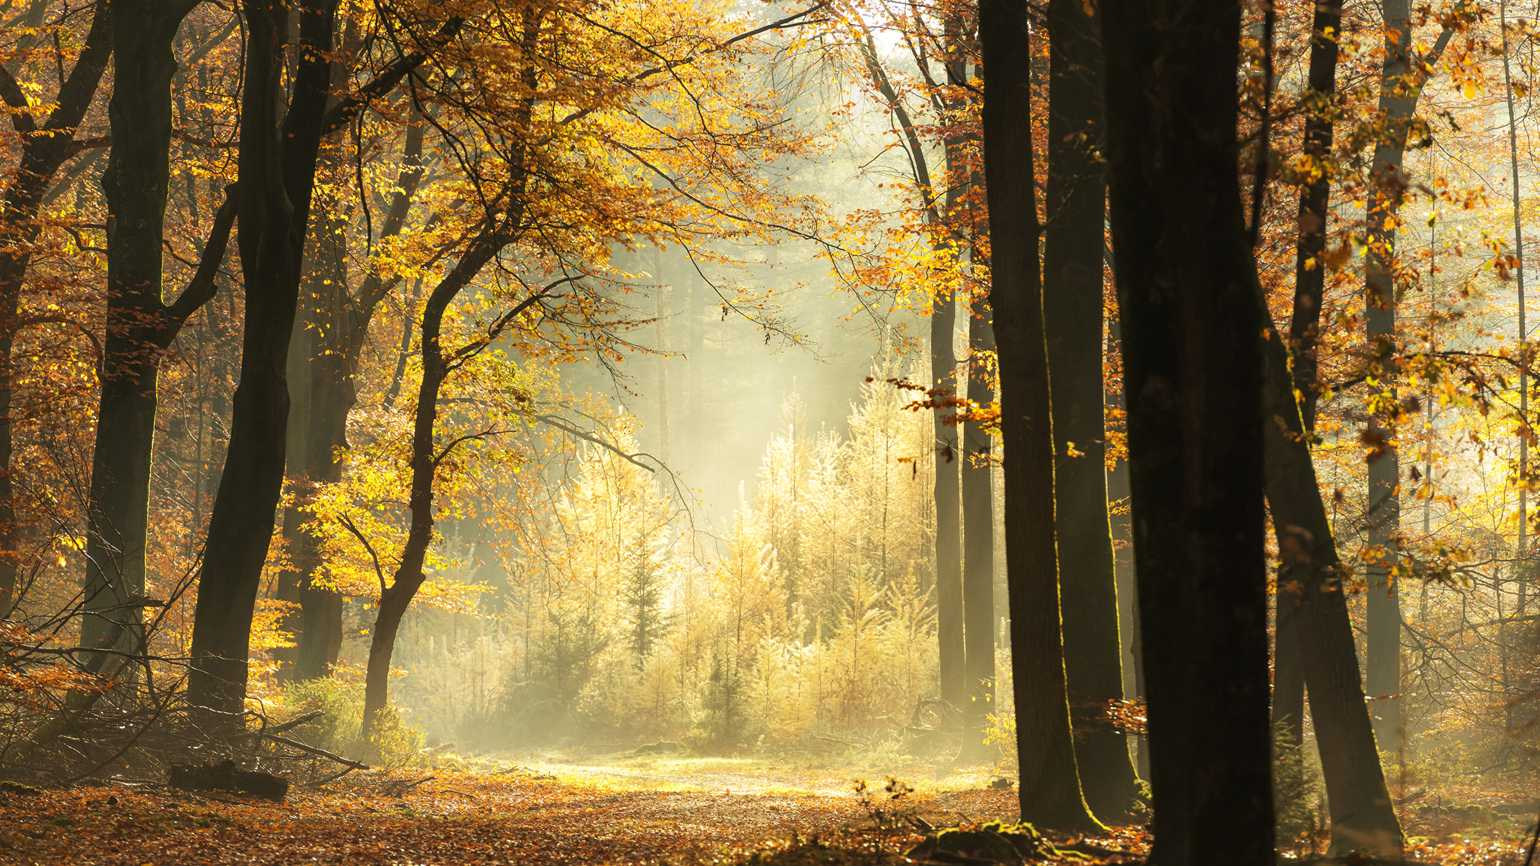 Path through a misty forest during a beautiful foggy autumn day; Getty Images